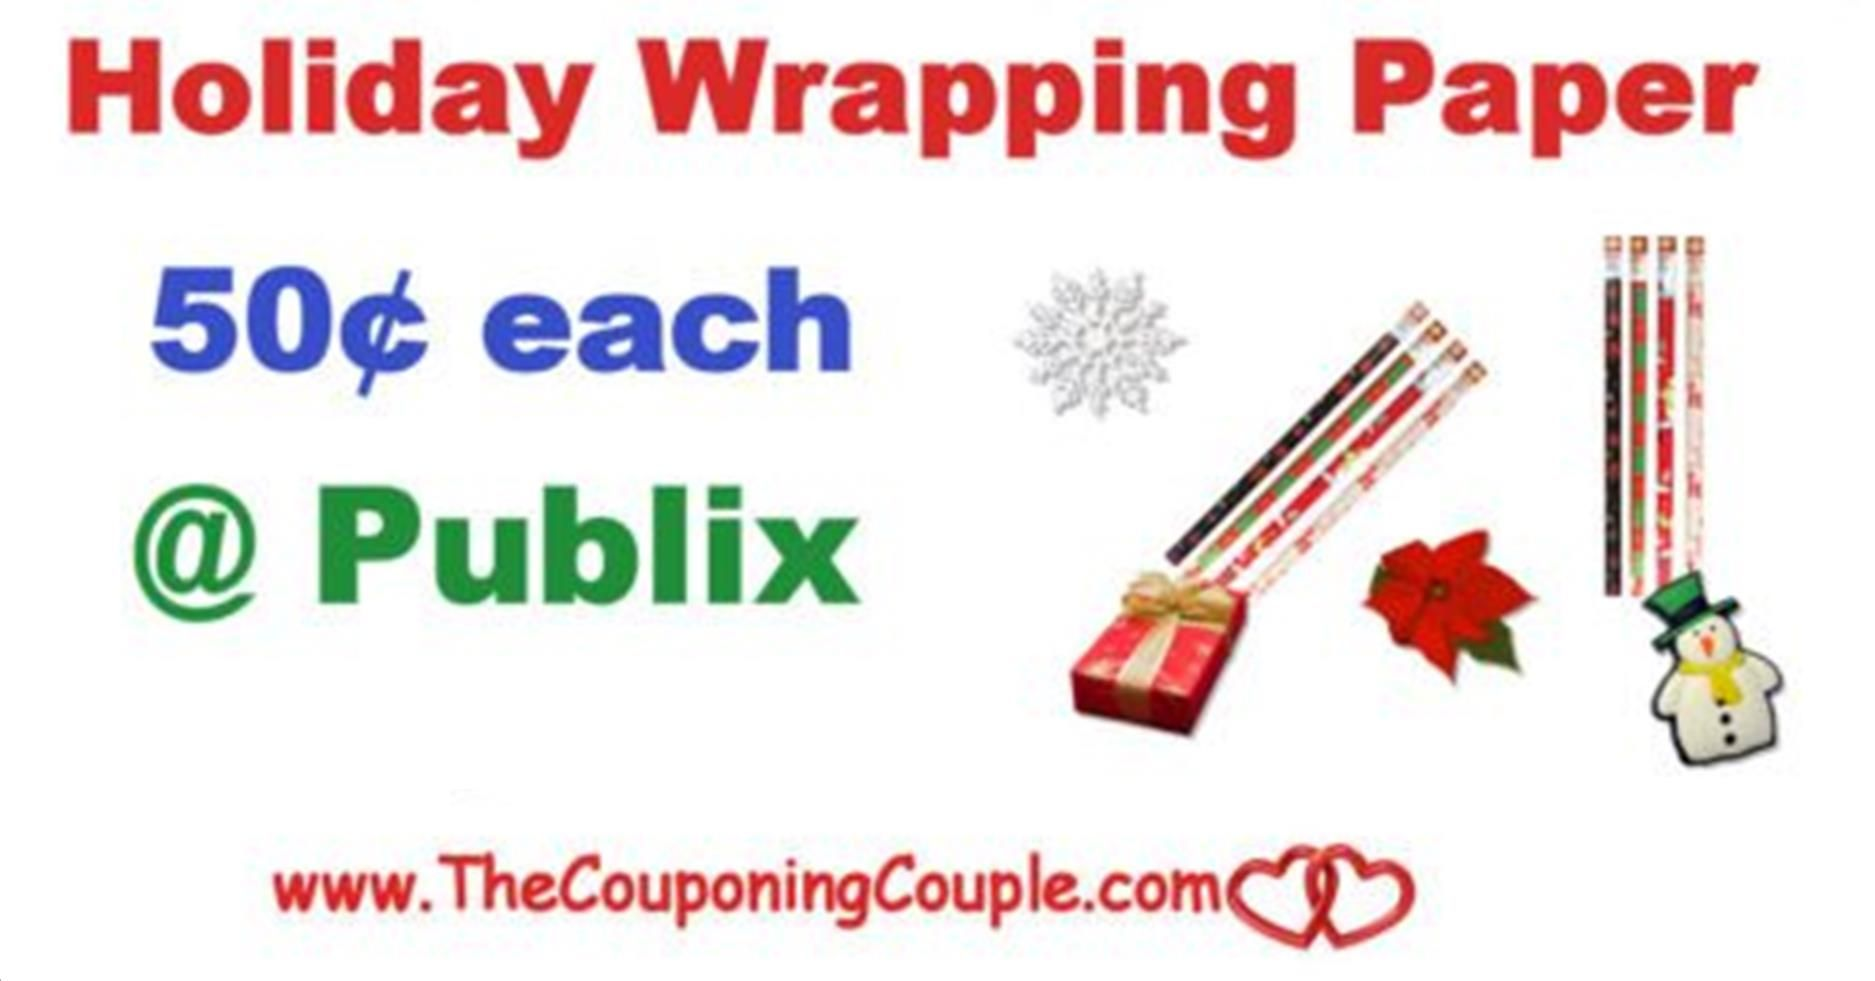 Holiday Wrapping Paper Only $0.50 Per Roll @ Publix | Store ads and ...